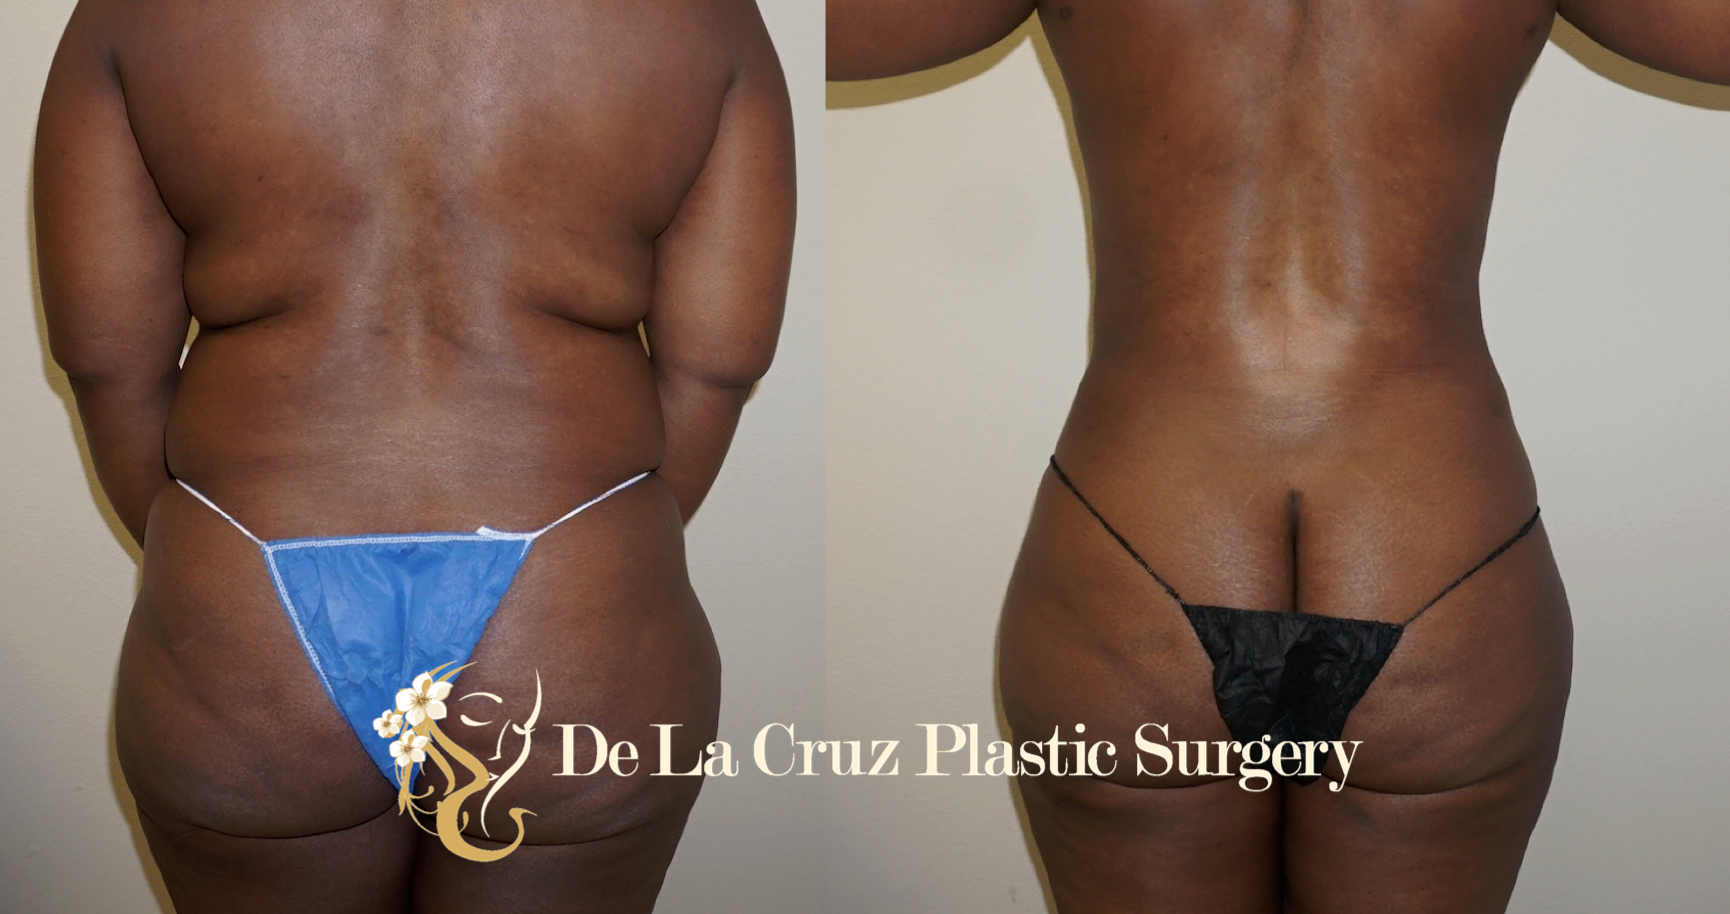 Before & After Photos of  VASER Liposuction  (6 weeks after surgery) performed by Emmanuel De La Cruz MD, PLLC.